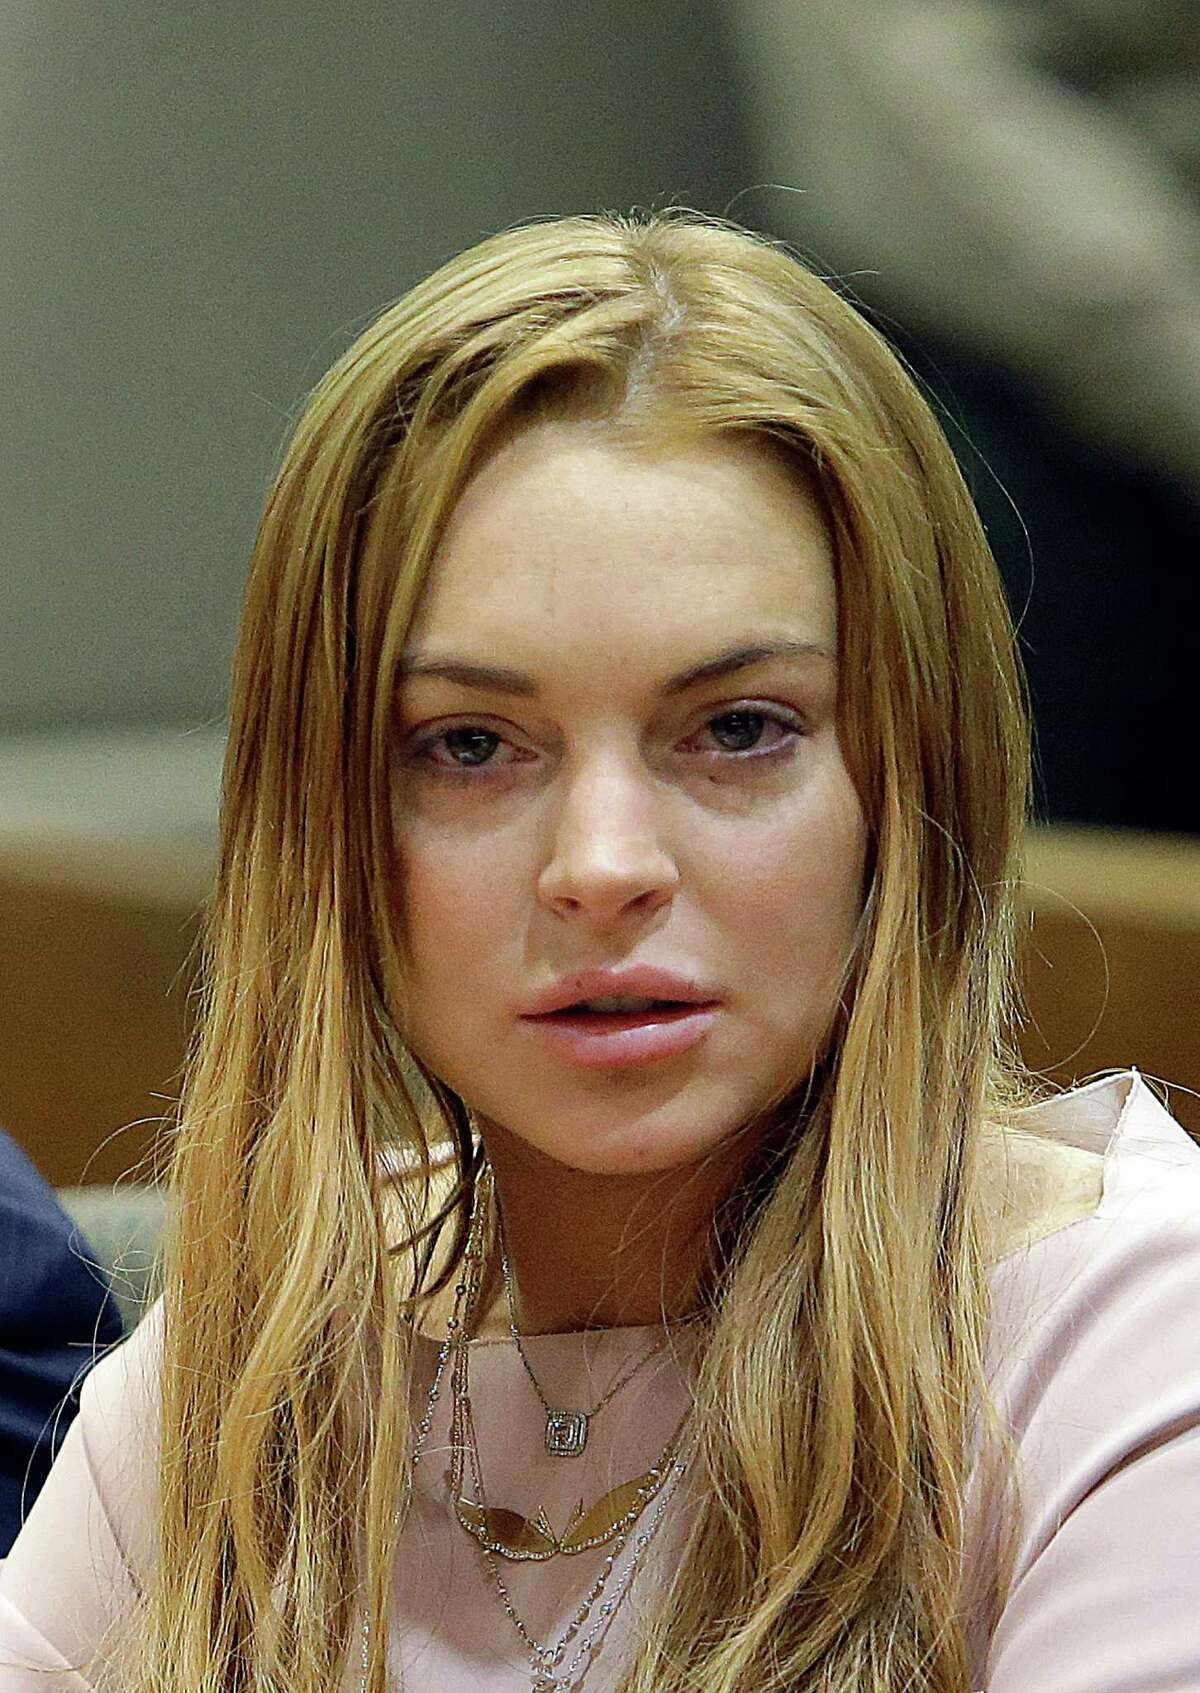 Actress Lindsay Lohan appears at a hearing in Los Angeles Superior Court on Monday.